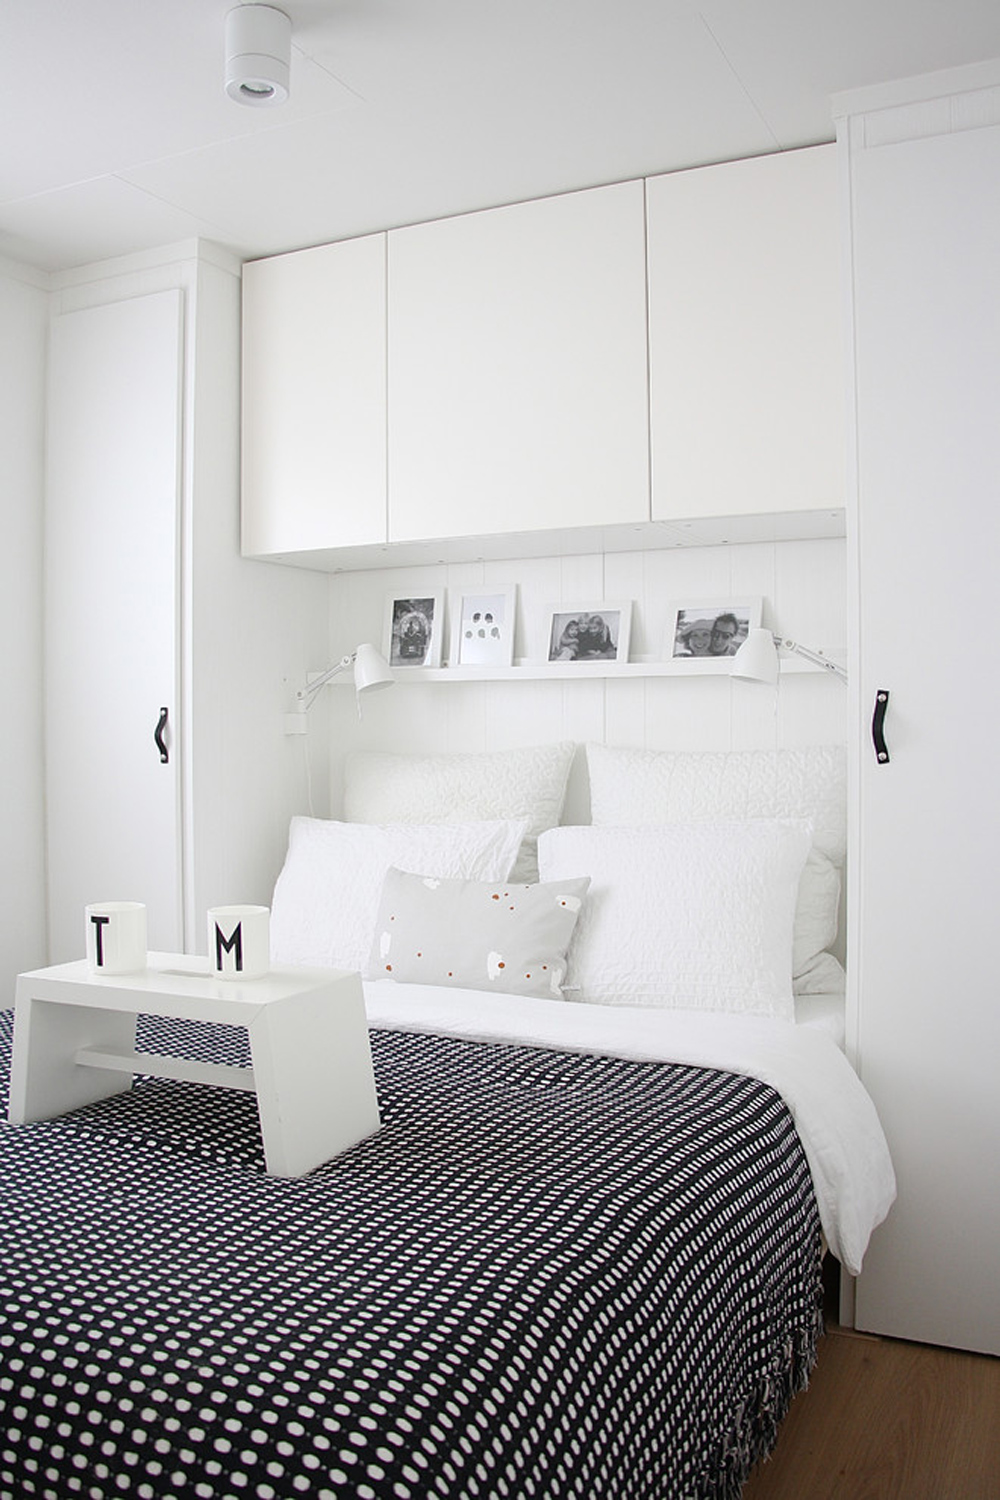 The home of Tessa-Martin-by-Holly-Marder storage ideas for bedrooms to optimize your space optimally